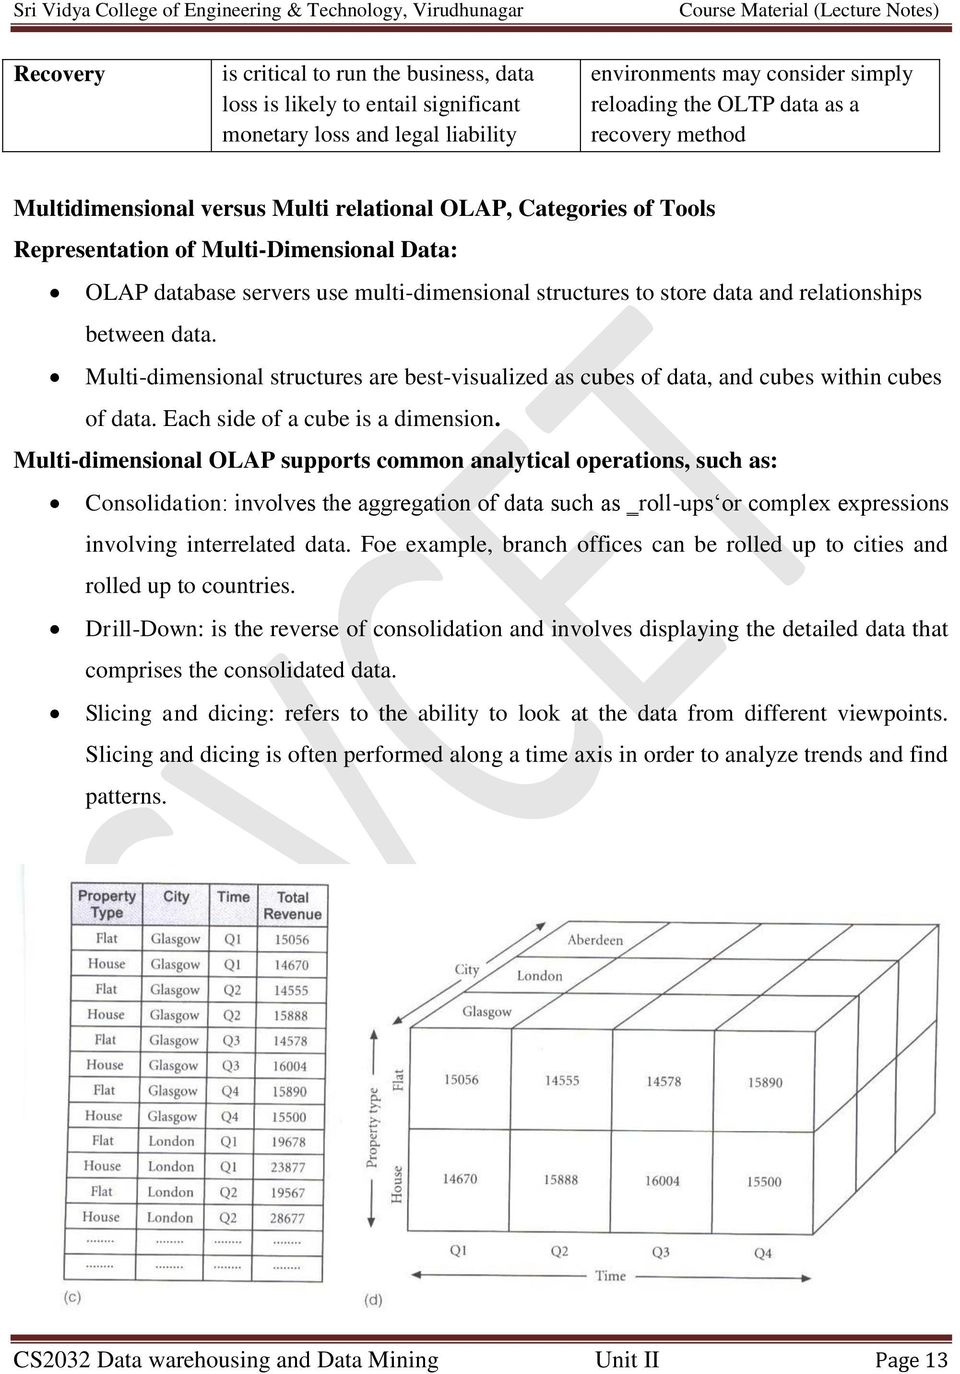 between data. Multi-dimensional structures are best-visualized as cubes of data, and cubes within cubes of data. Each side of a cube is a dimension.